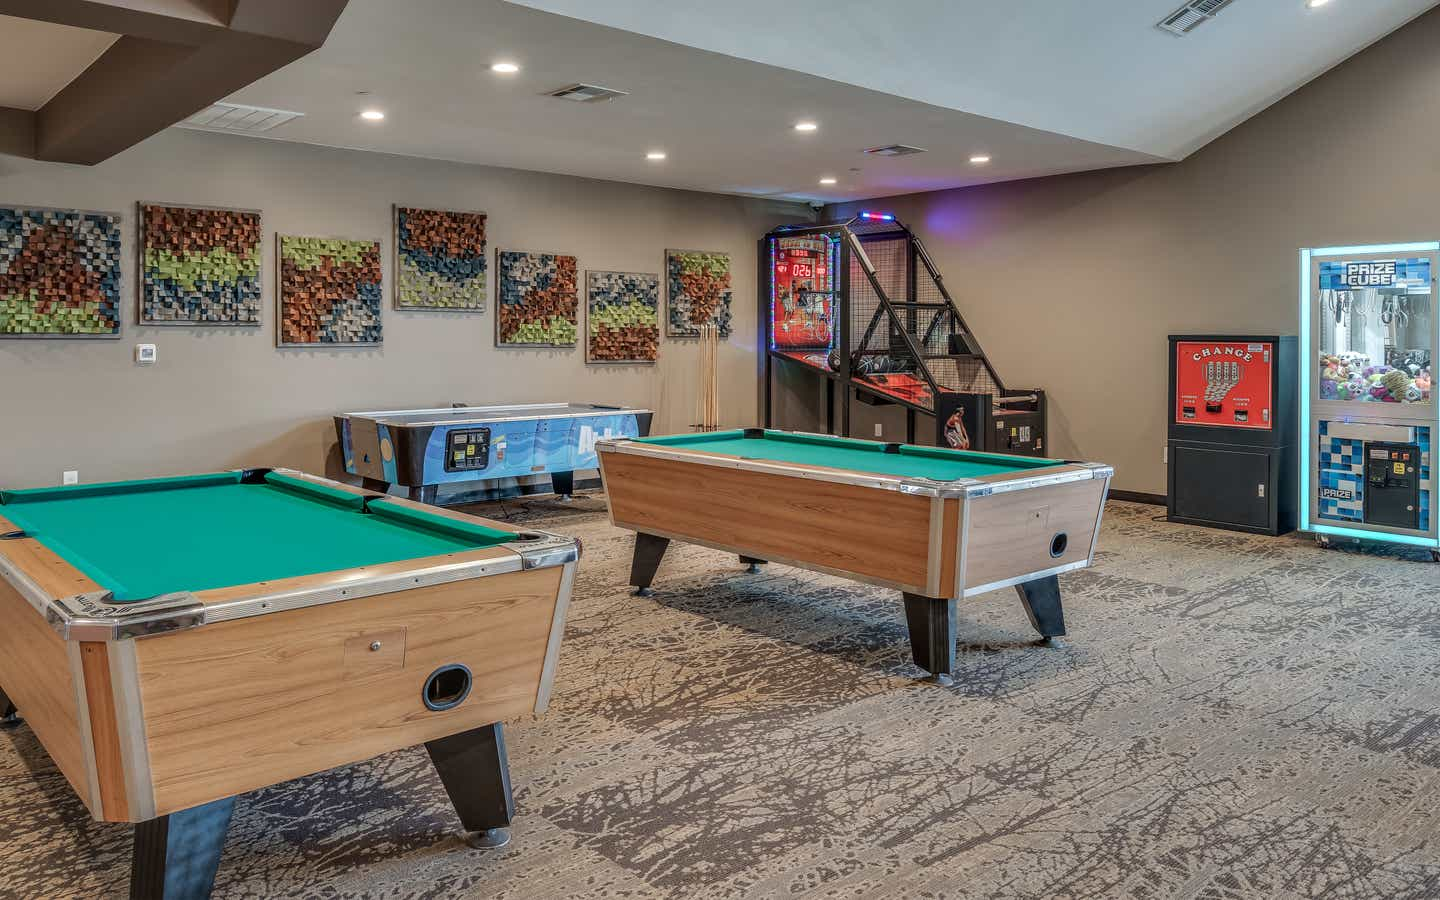 Game room with pool tables and air hockey at Piney Shores Resort in Conroe, Texas.